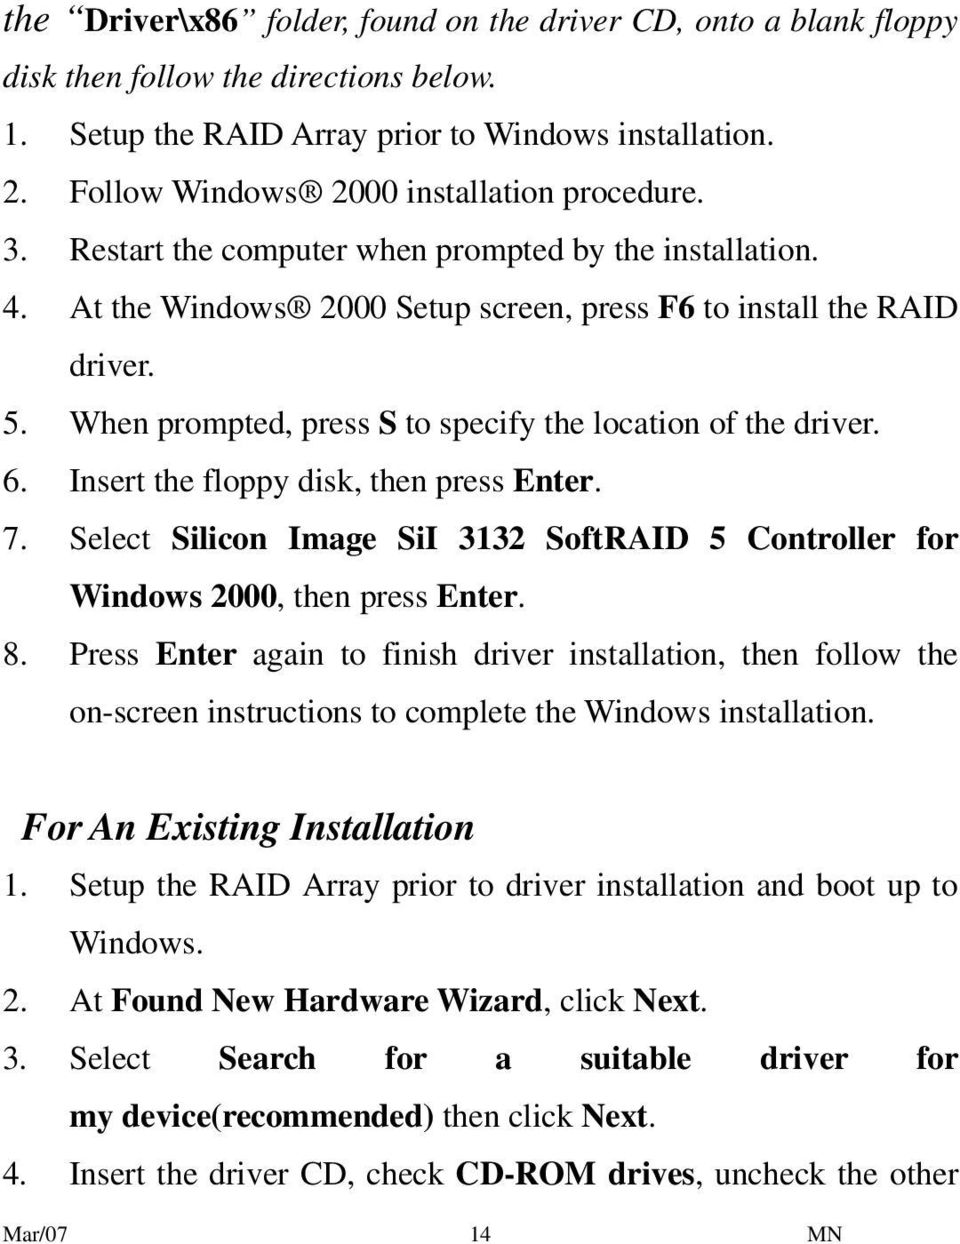 When prompted, press S to specify the location of the driver. 6. Insert the floppy disk, then press Enter. 7. Select Silicon Image SiI 3132 SoftRAID 5 Controller for Windows 2000, then press Enter. 8.